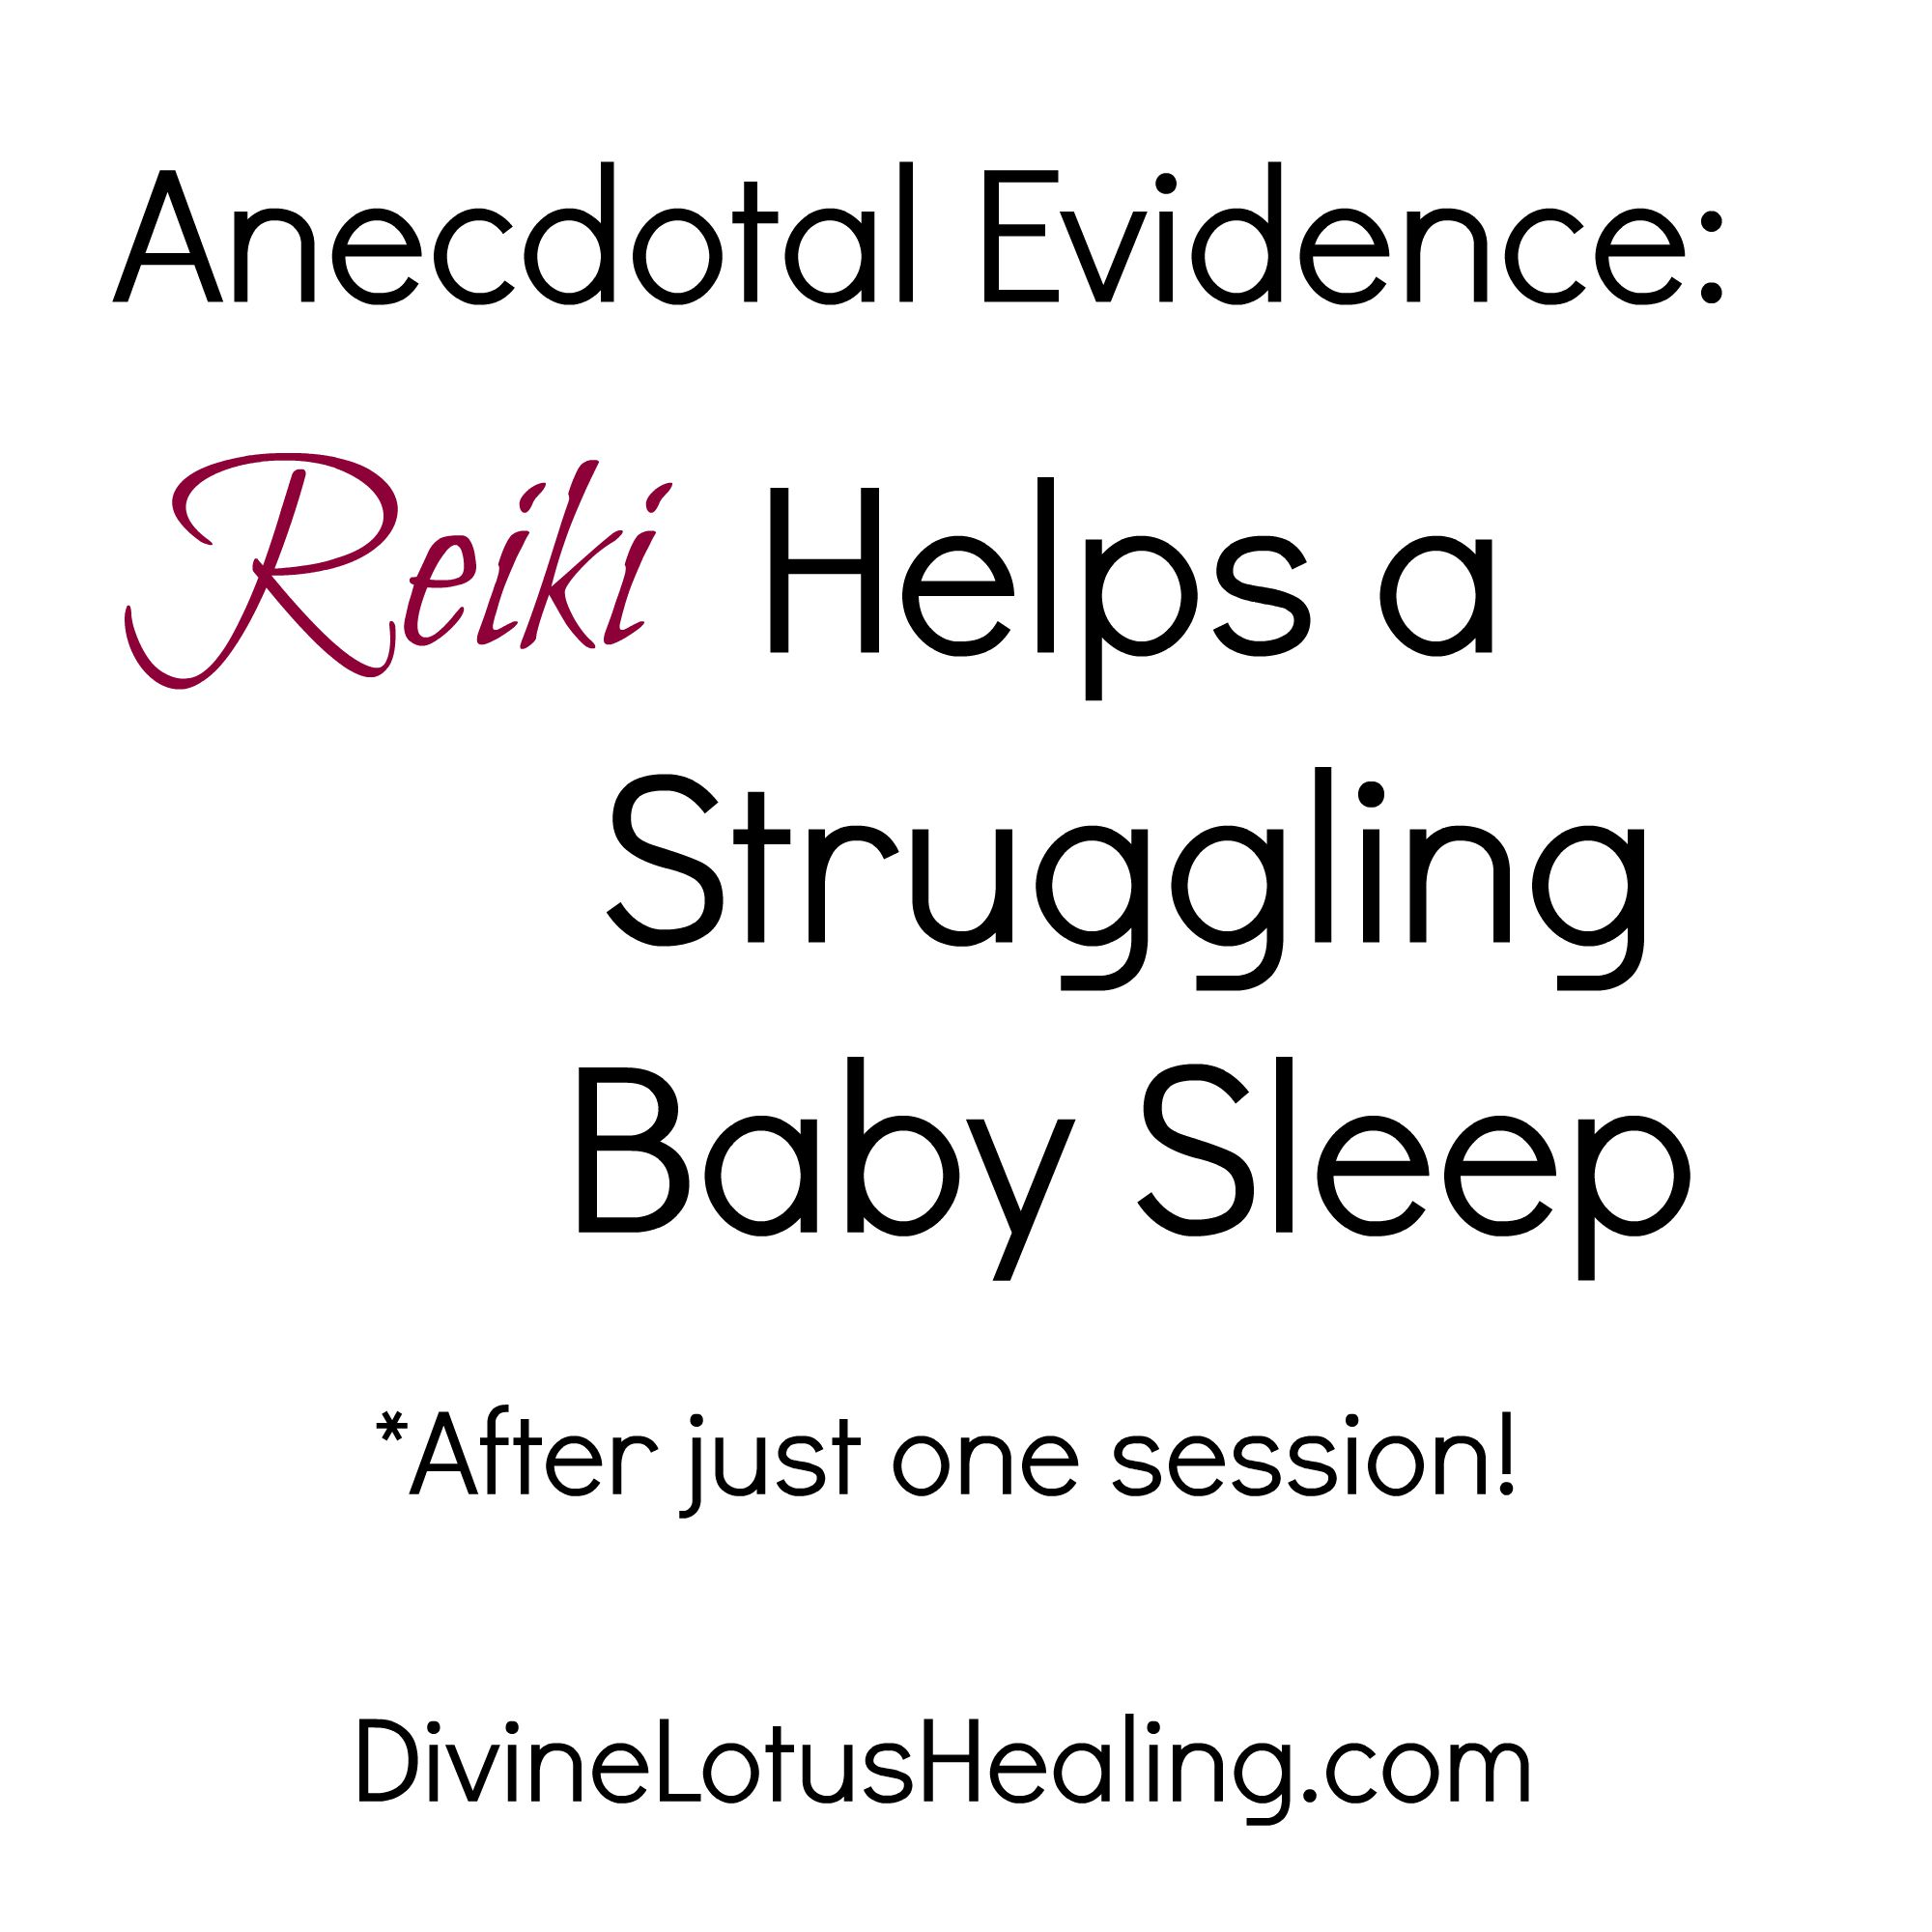 Divine Lotus Healing Reiki Helps a Struggling Baby Sleep